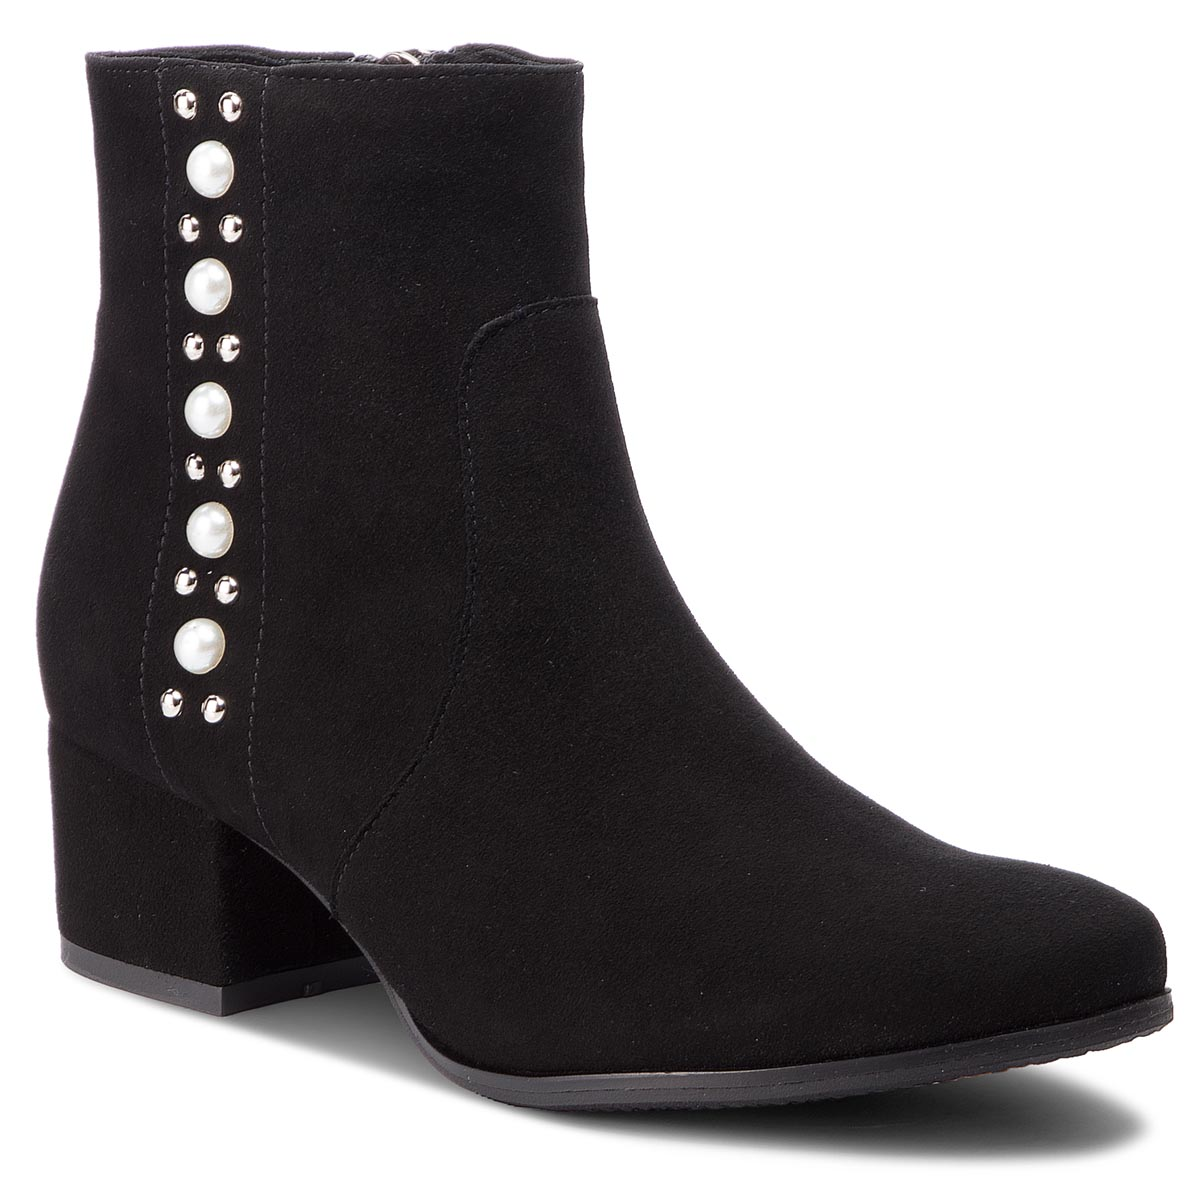 Bottines ANN MEX - 9171 01W Noir